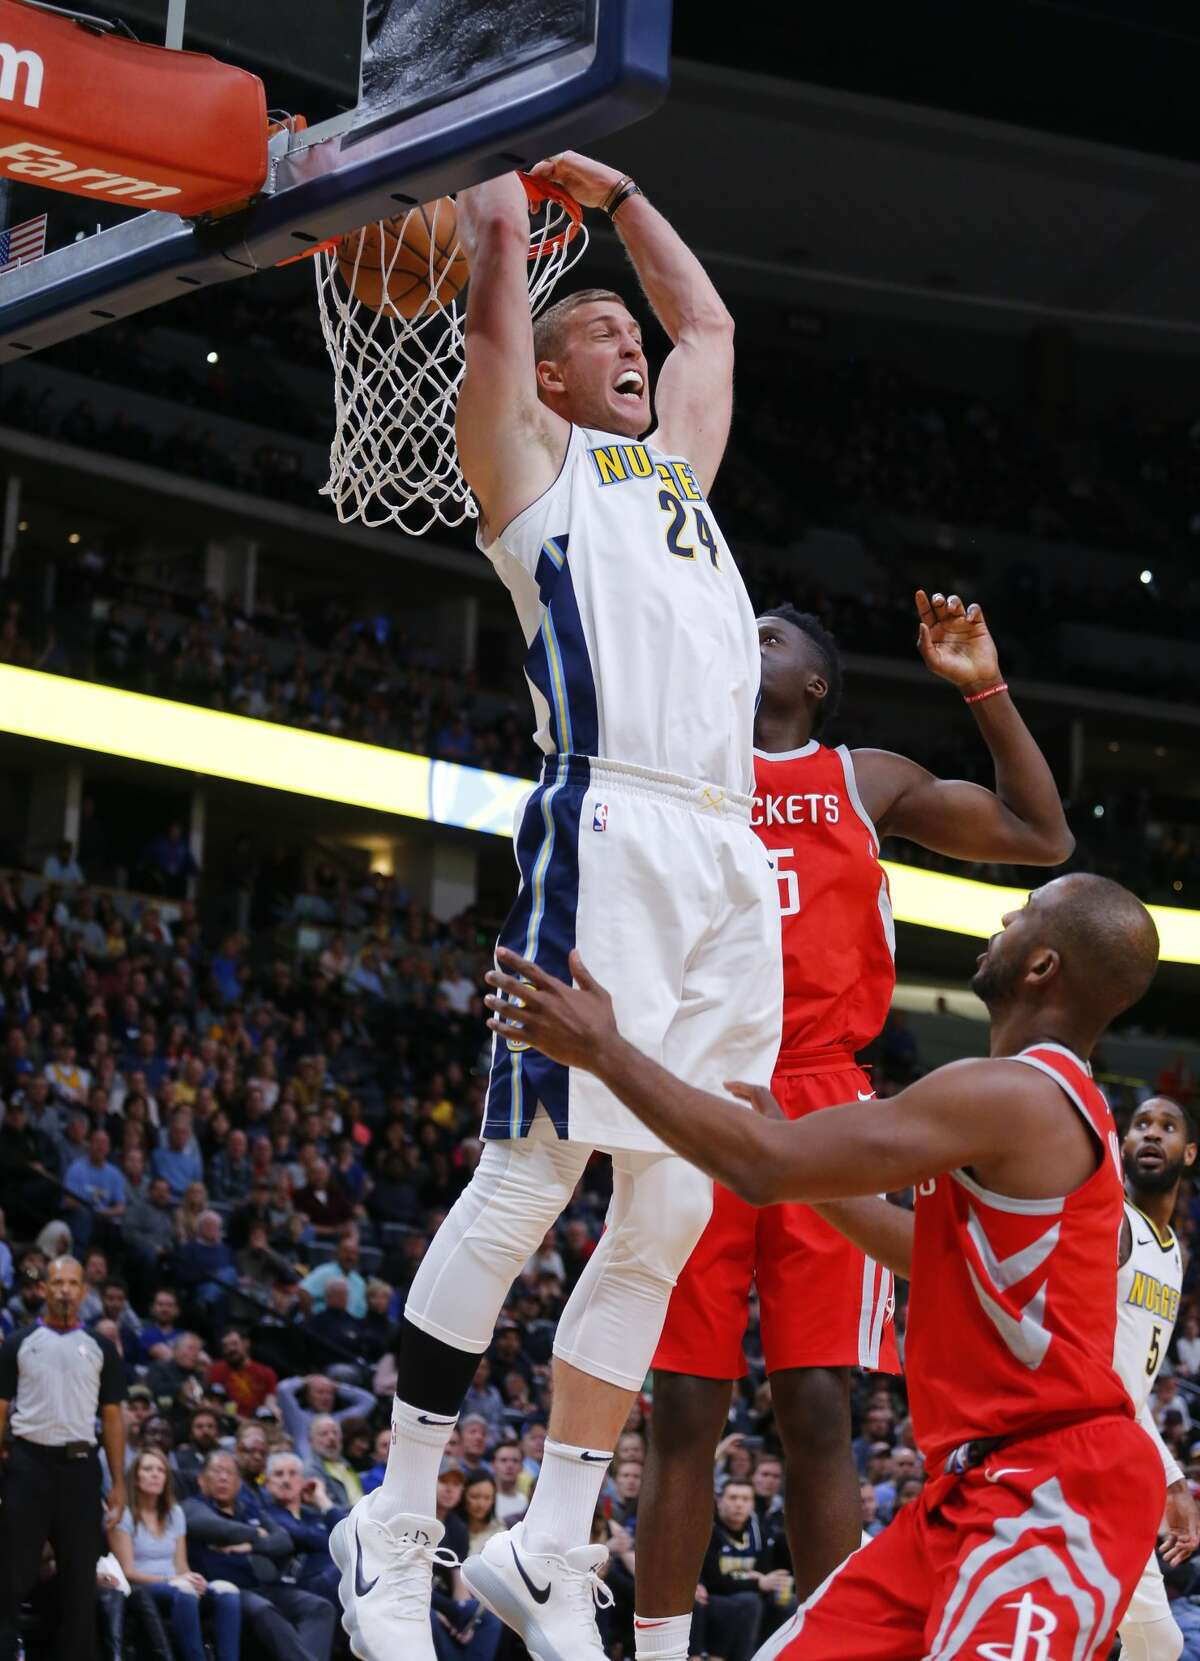 Denver Nuggets center Mason Plumlee (24) reverse dunks against the Houston Rockets during the fourth quarter of an NBA basketball game, Sunday, Feb. 25, 2018, in Denver. (AP Photo/Jack Dempsey)